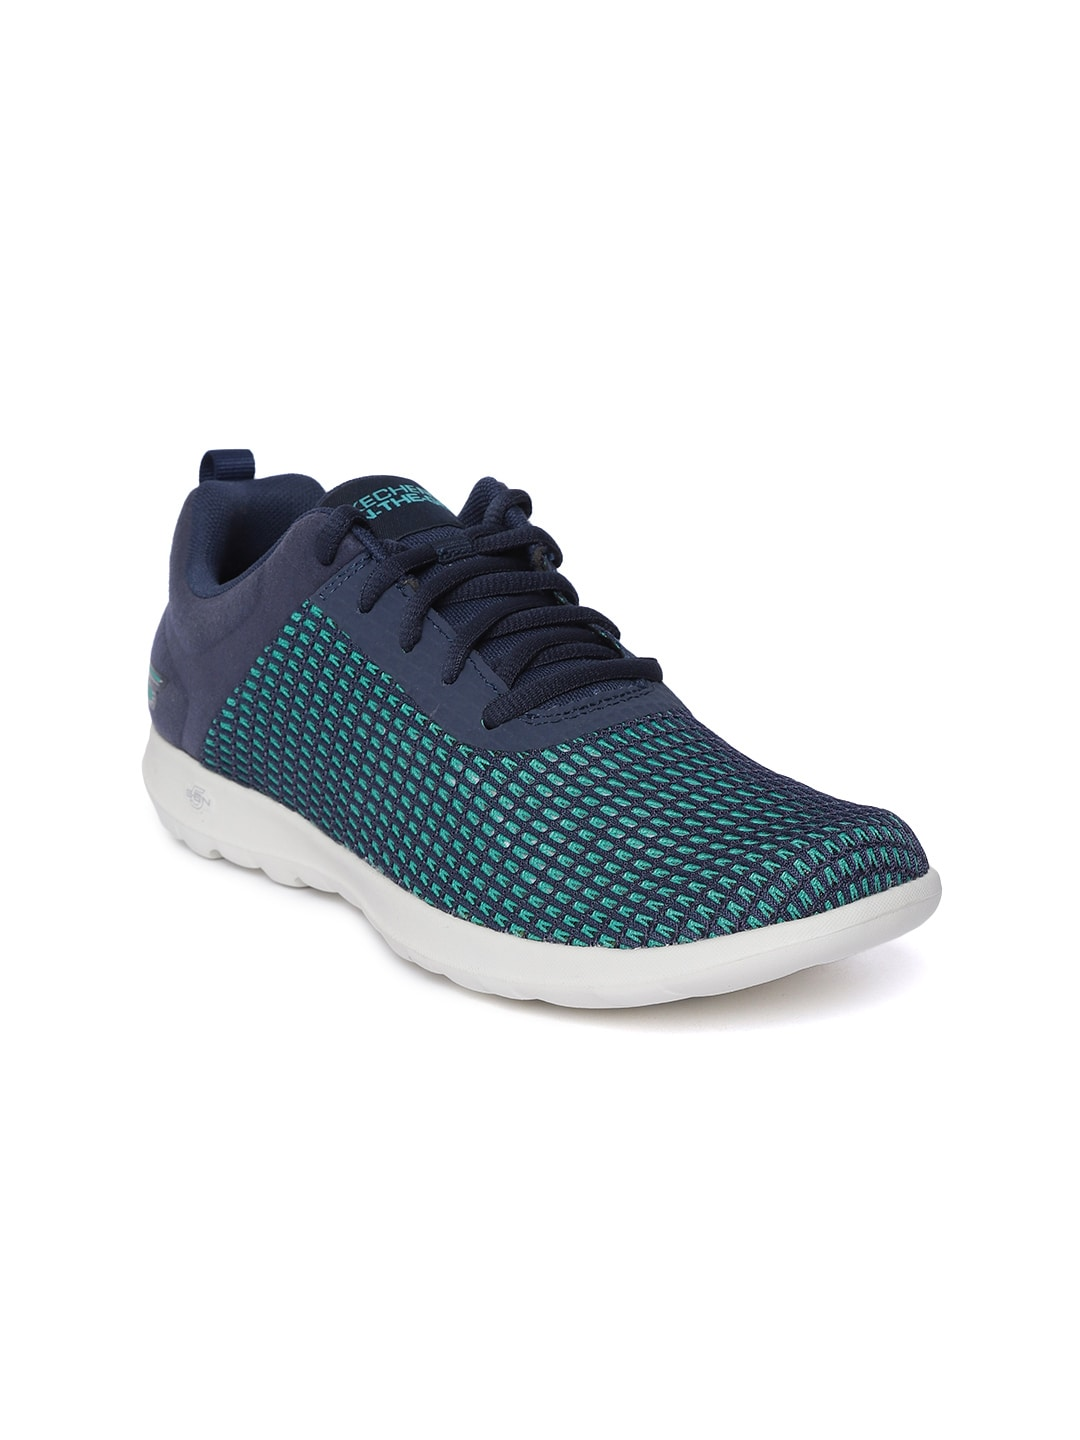 b8b93480264a Sports Shoes for Women - Buy Women Sports Shoes Online